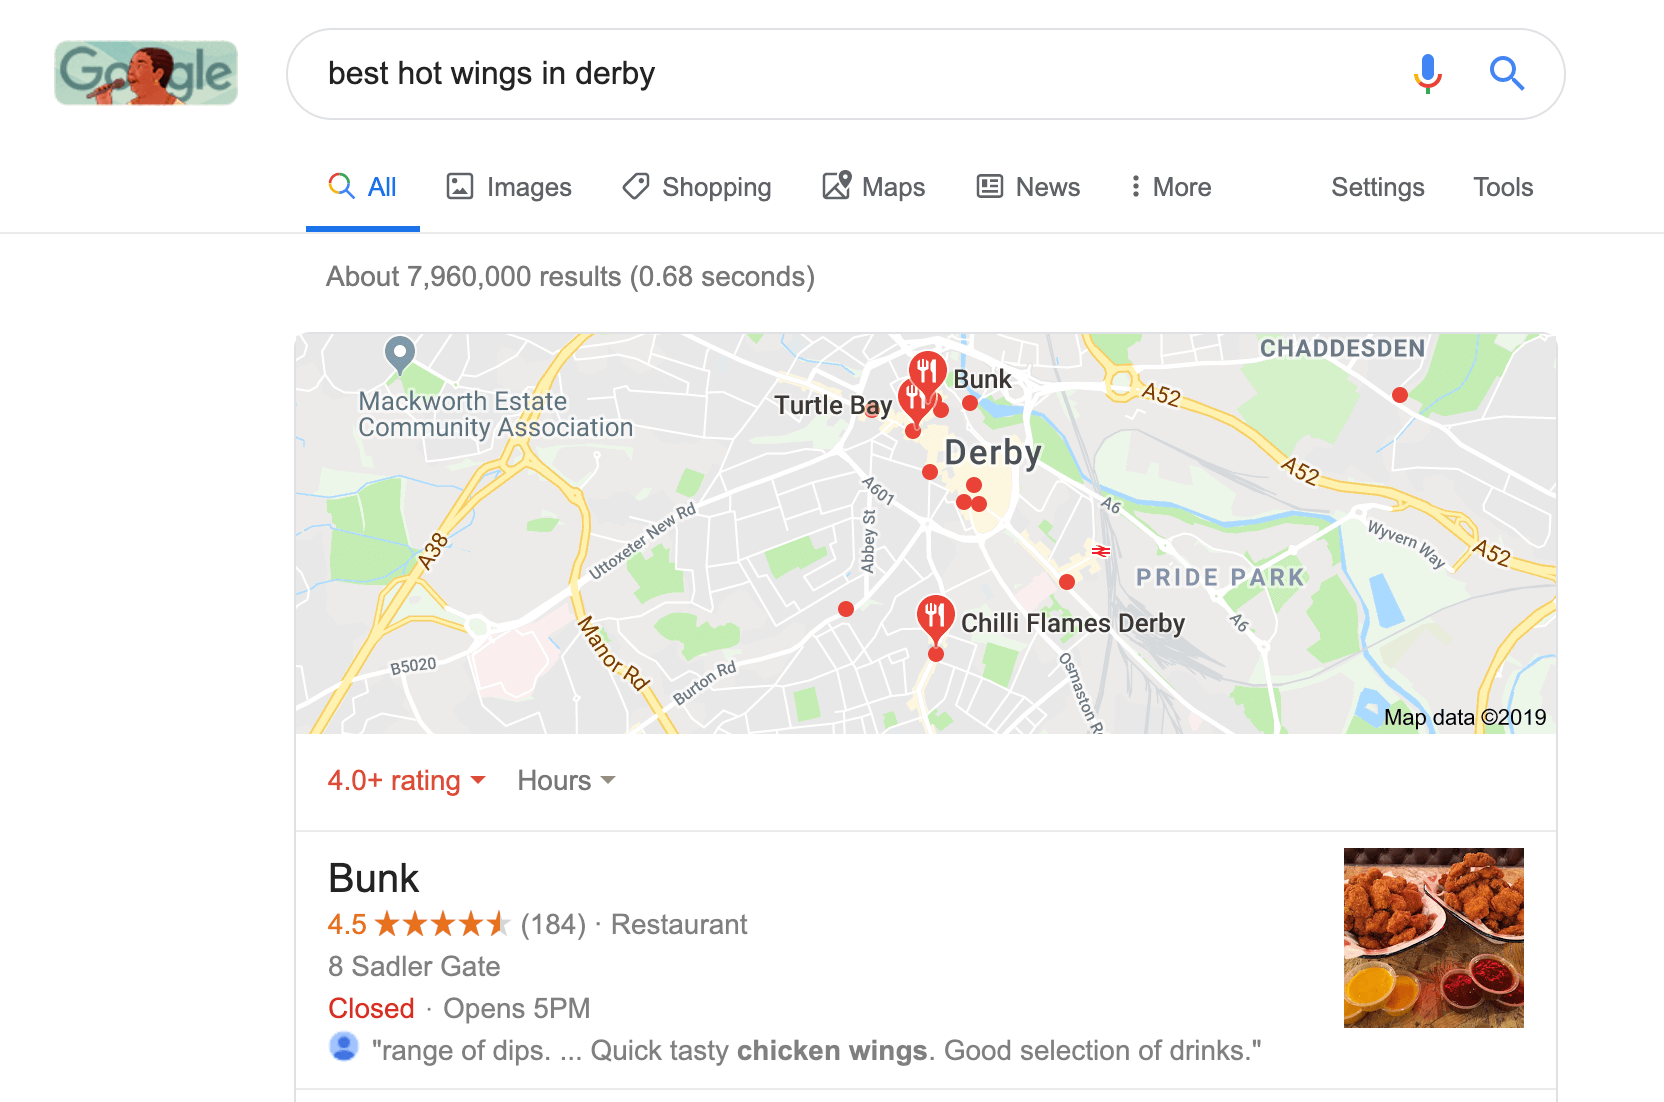 image of google search results showing best hot wings in derby to show LSI keywords